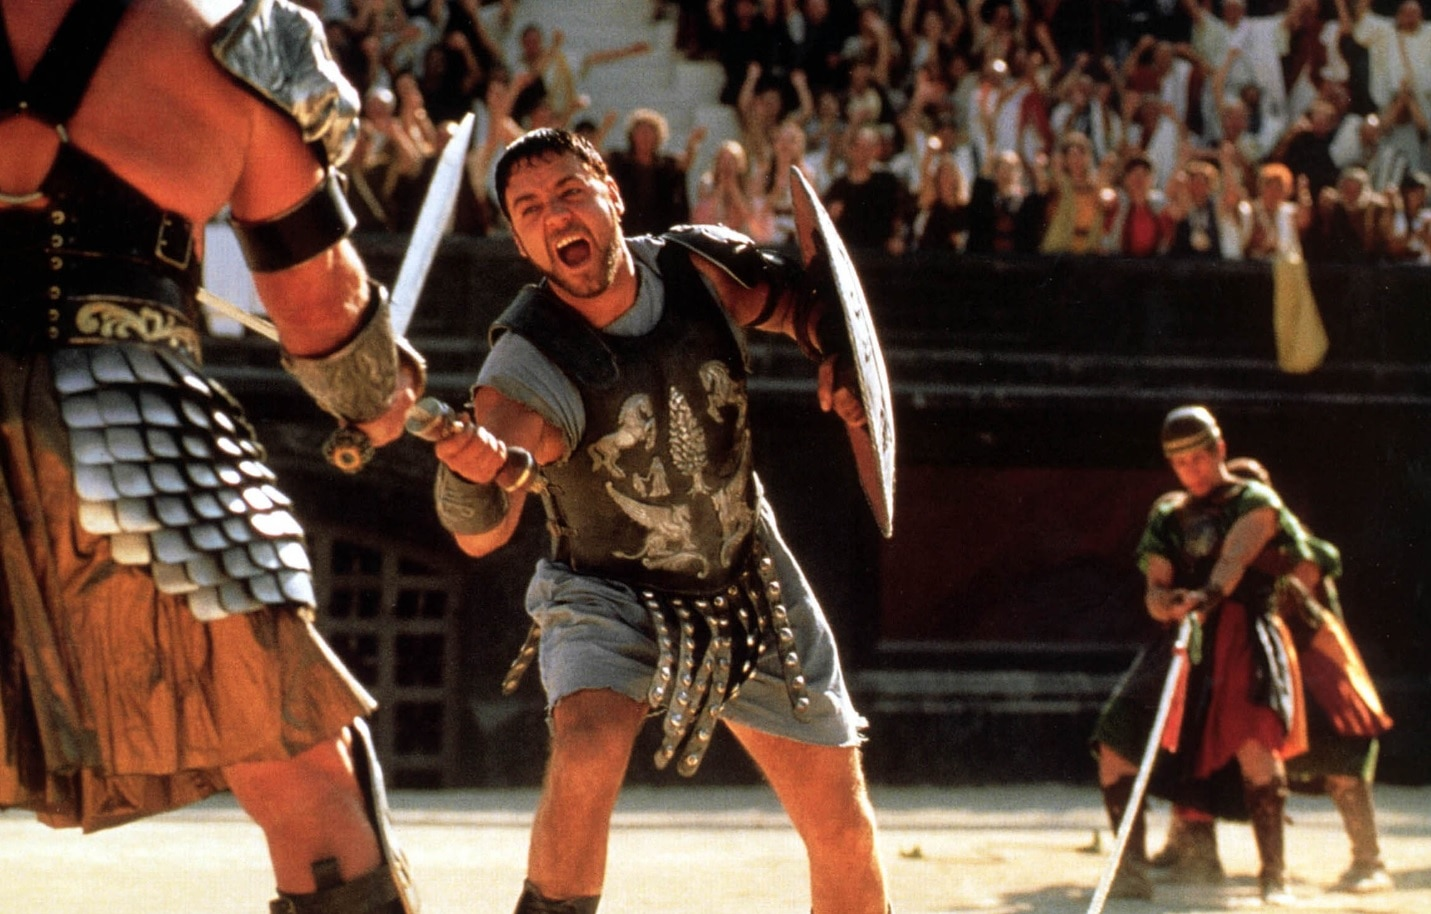 Russell Crowe's 'Gladiator' armor sells for $96K at 'divorce' auction